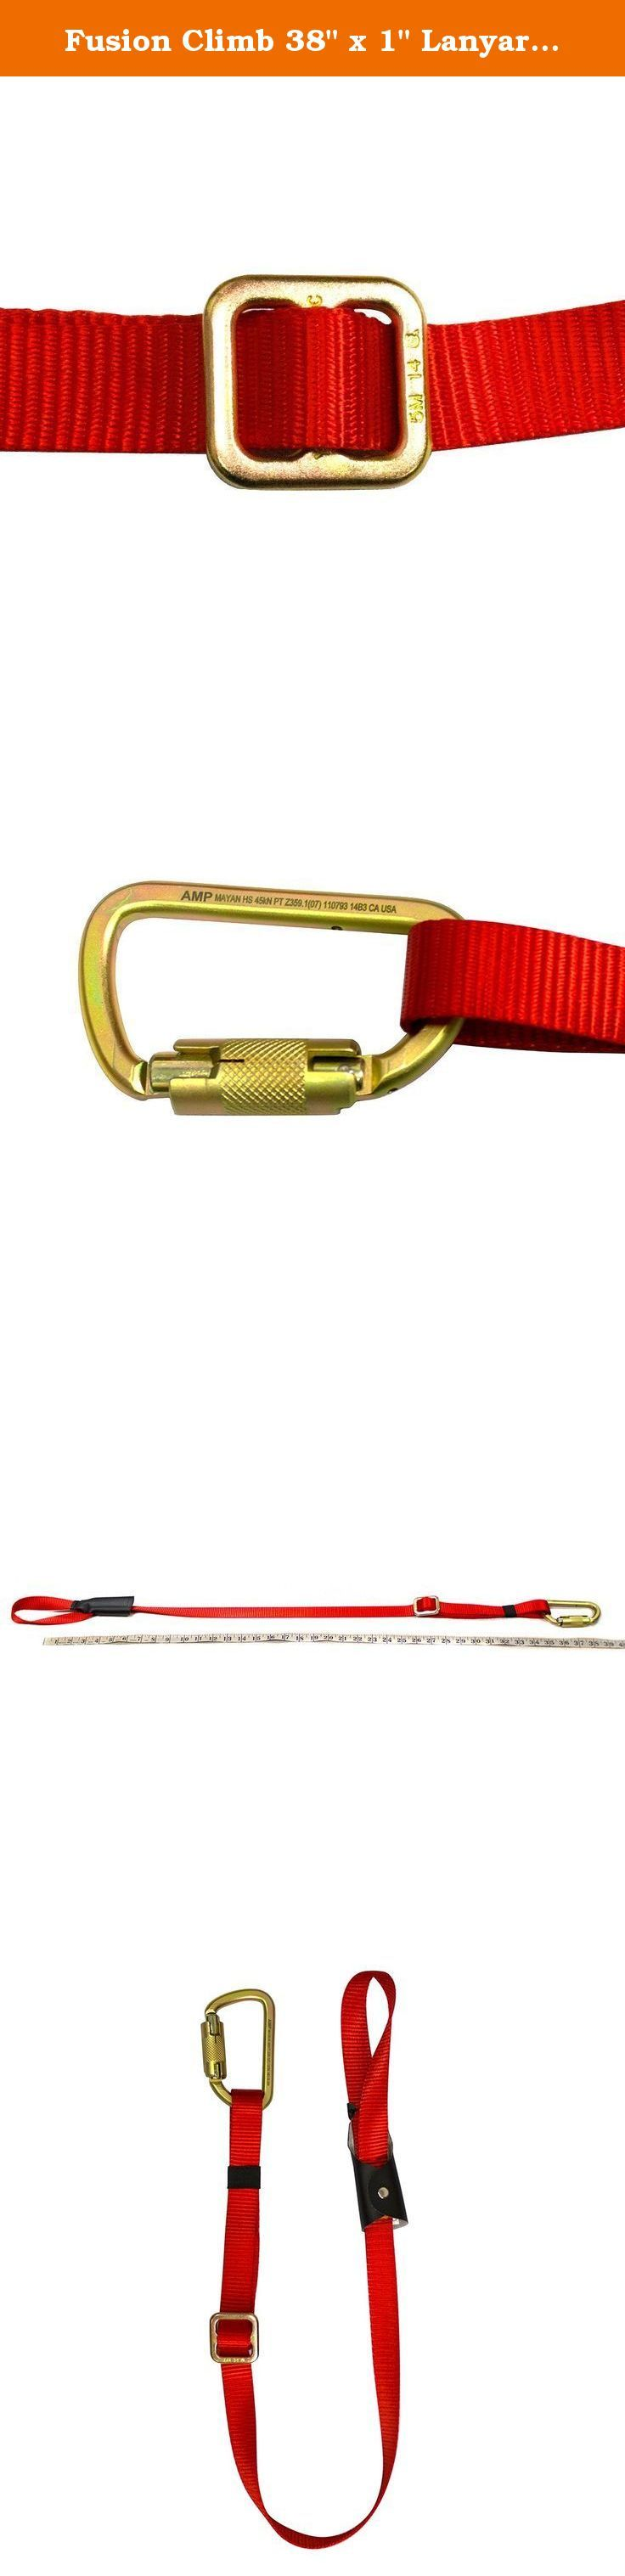 """Fusion Climb 38"""" x 1"""" Lanyard with Double Locking High Strength Steel Carabineer, Red/Gold. Fusion Climb 38"""" x 1"""" Lanyard with Double Locking High Strength Steel Carabiner Red - Single leg adjustable up to 38"""" with tie back feature. - Webbing rated more than 5000lbs and steel carabiner rated more than 5000lbs. - Girth hitch at one end and high strength carabiner 9103GPK-HS at the other end. ."""